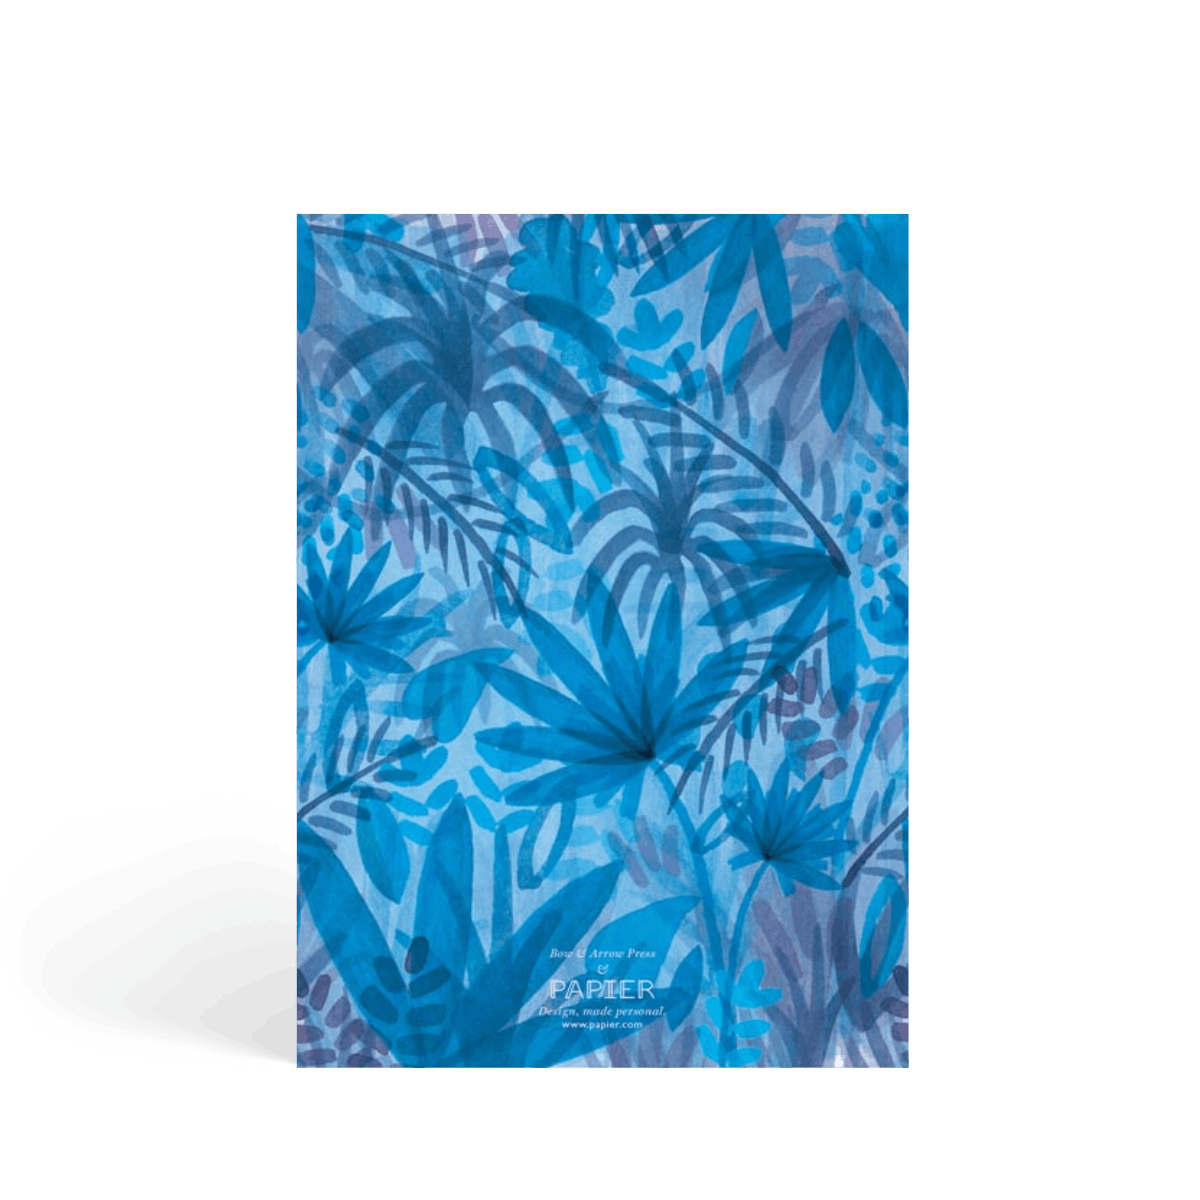 Https%3a%2f%2fwww.papier.com%2fproduct image%2f6293%2f5%2fblue jungle 1614 back 1461251967.png?ixlib=rb 1.1